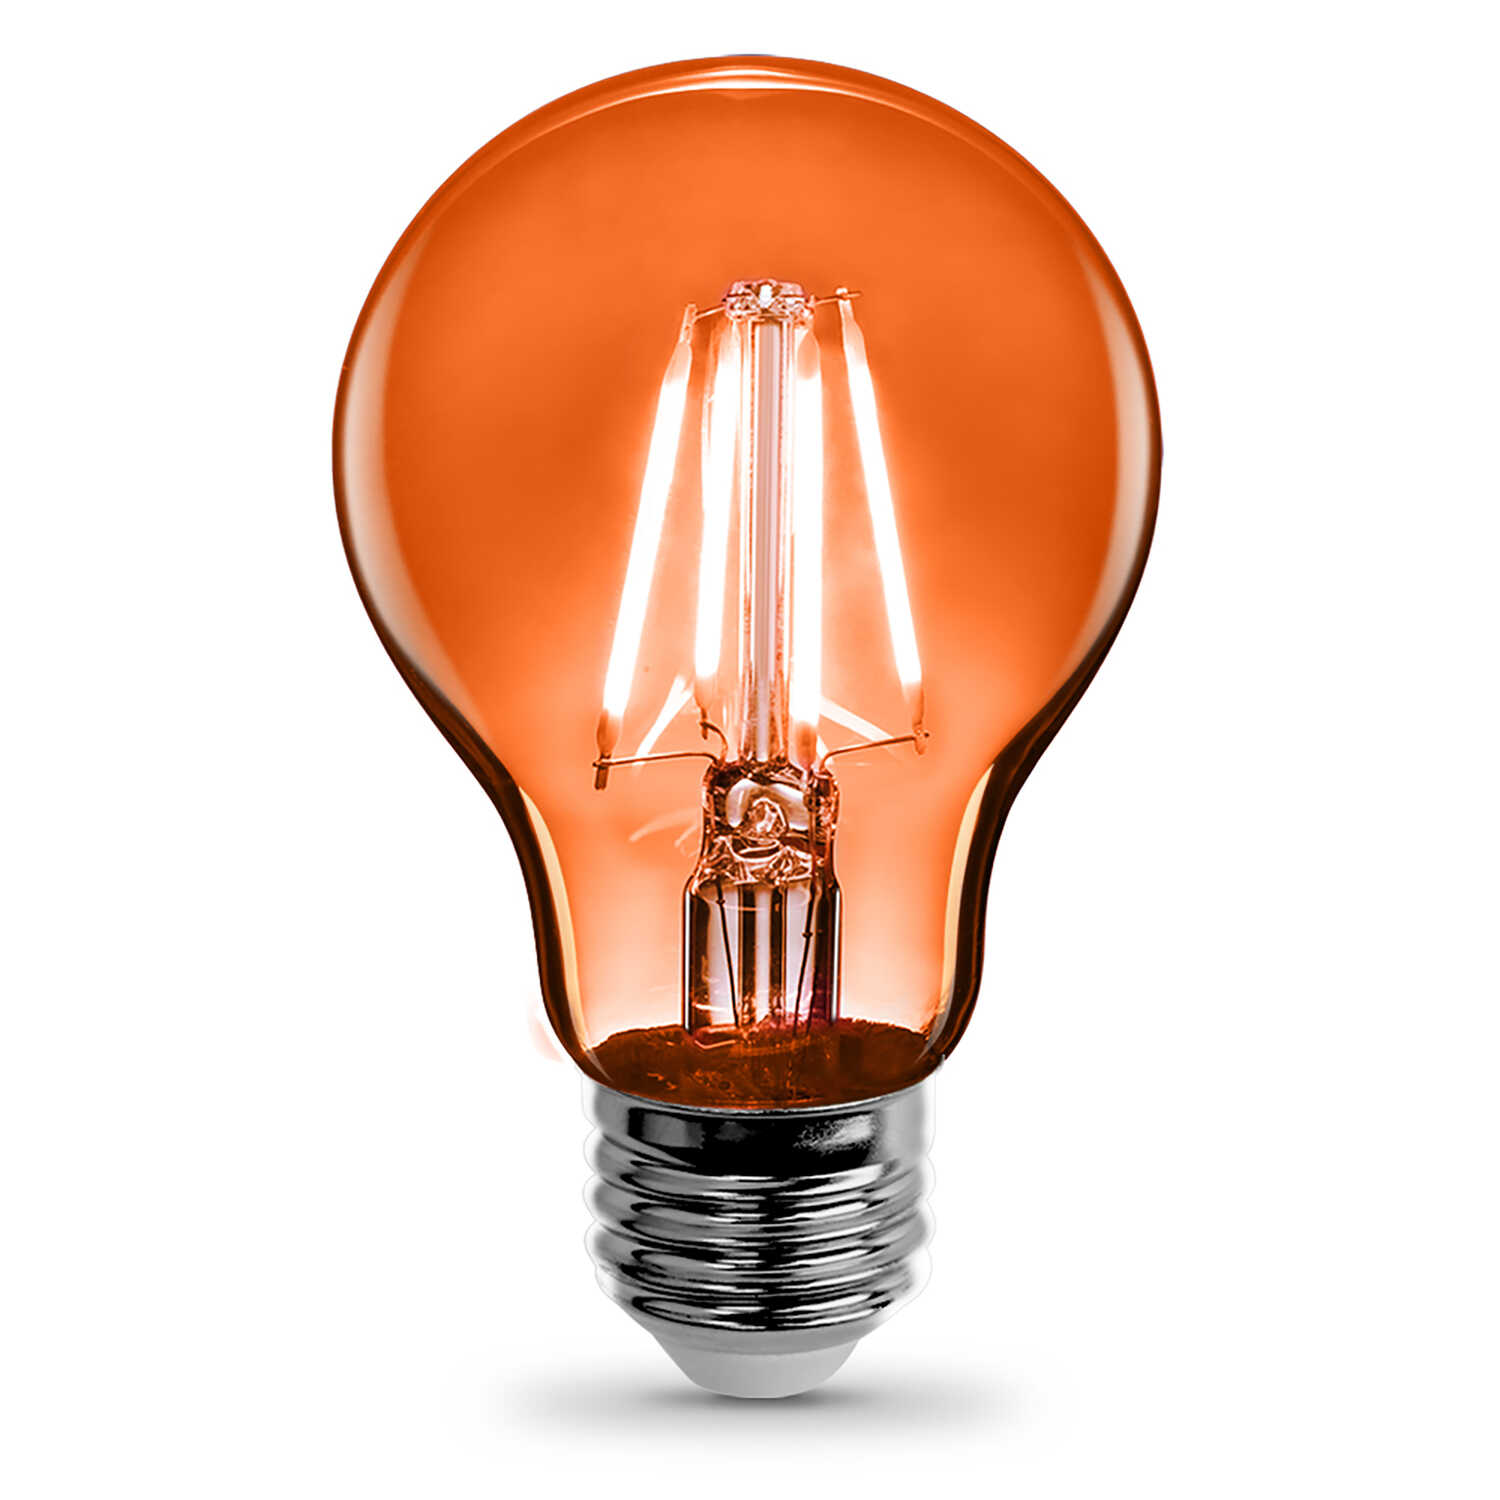 FEIT Electric  Filament  4.5 watts A19  LED Bulb  450 lumens Orange  A-Line  30 Watt Equivalence